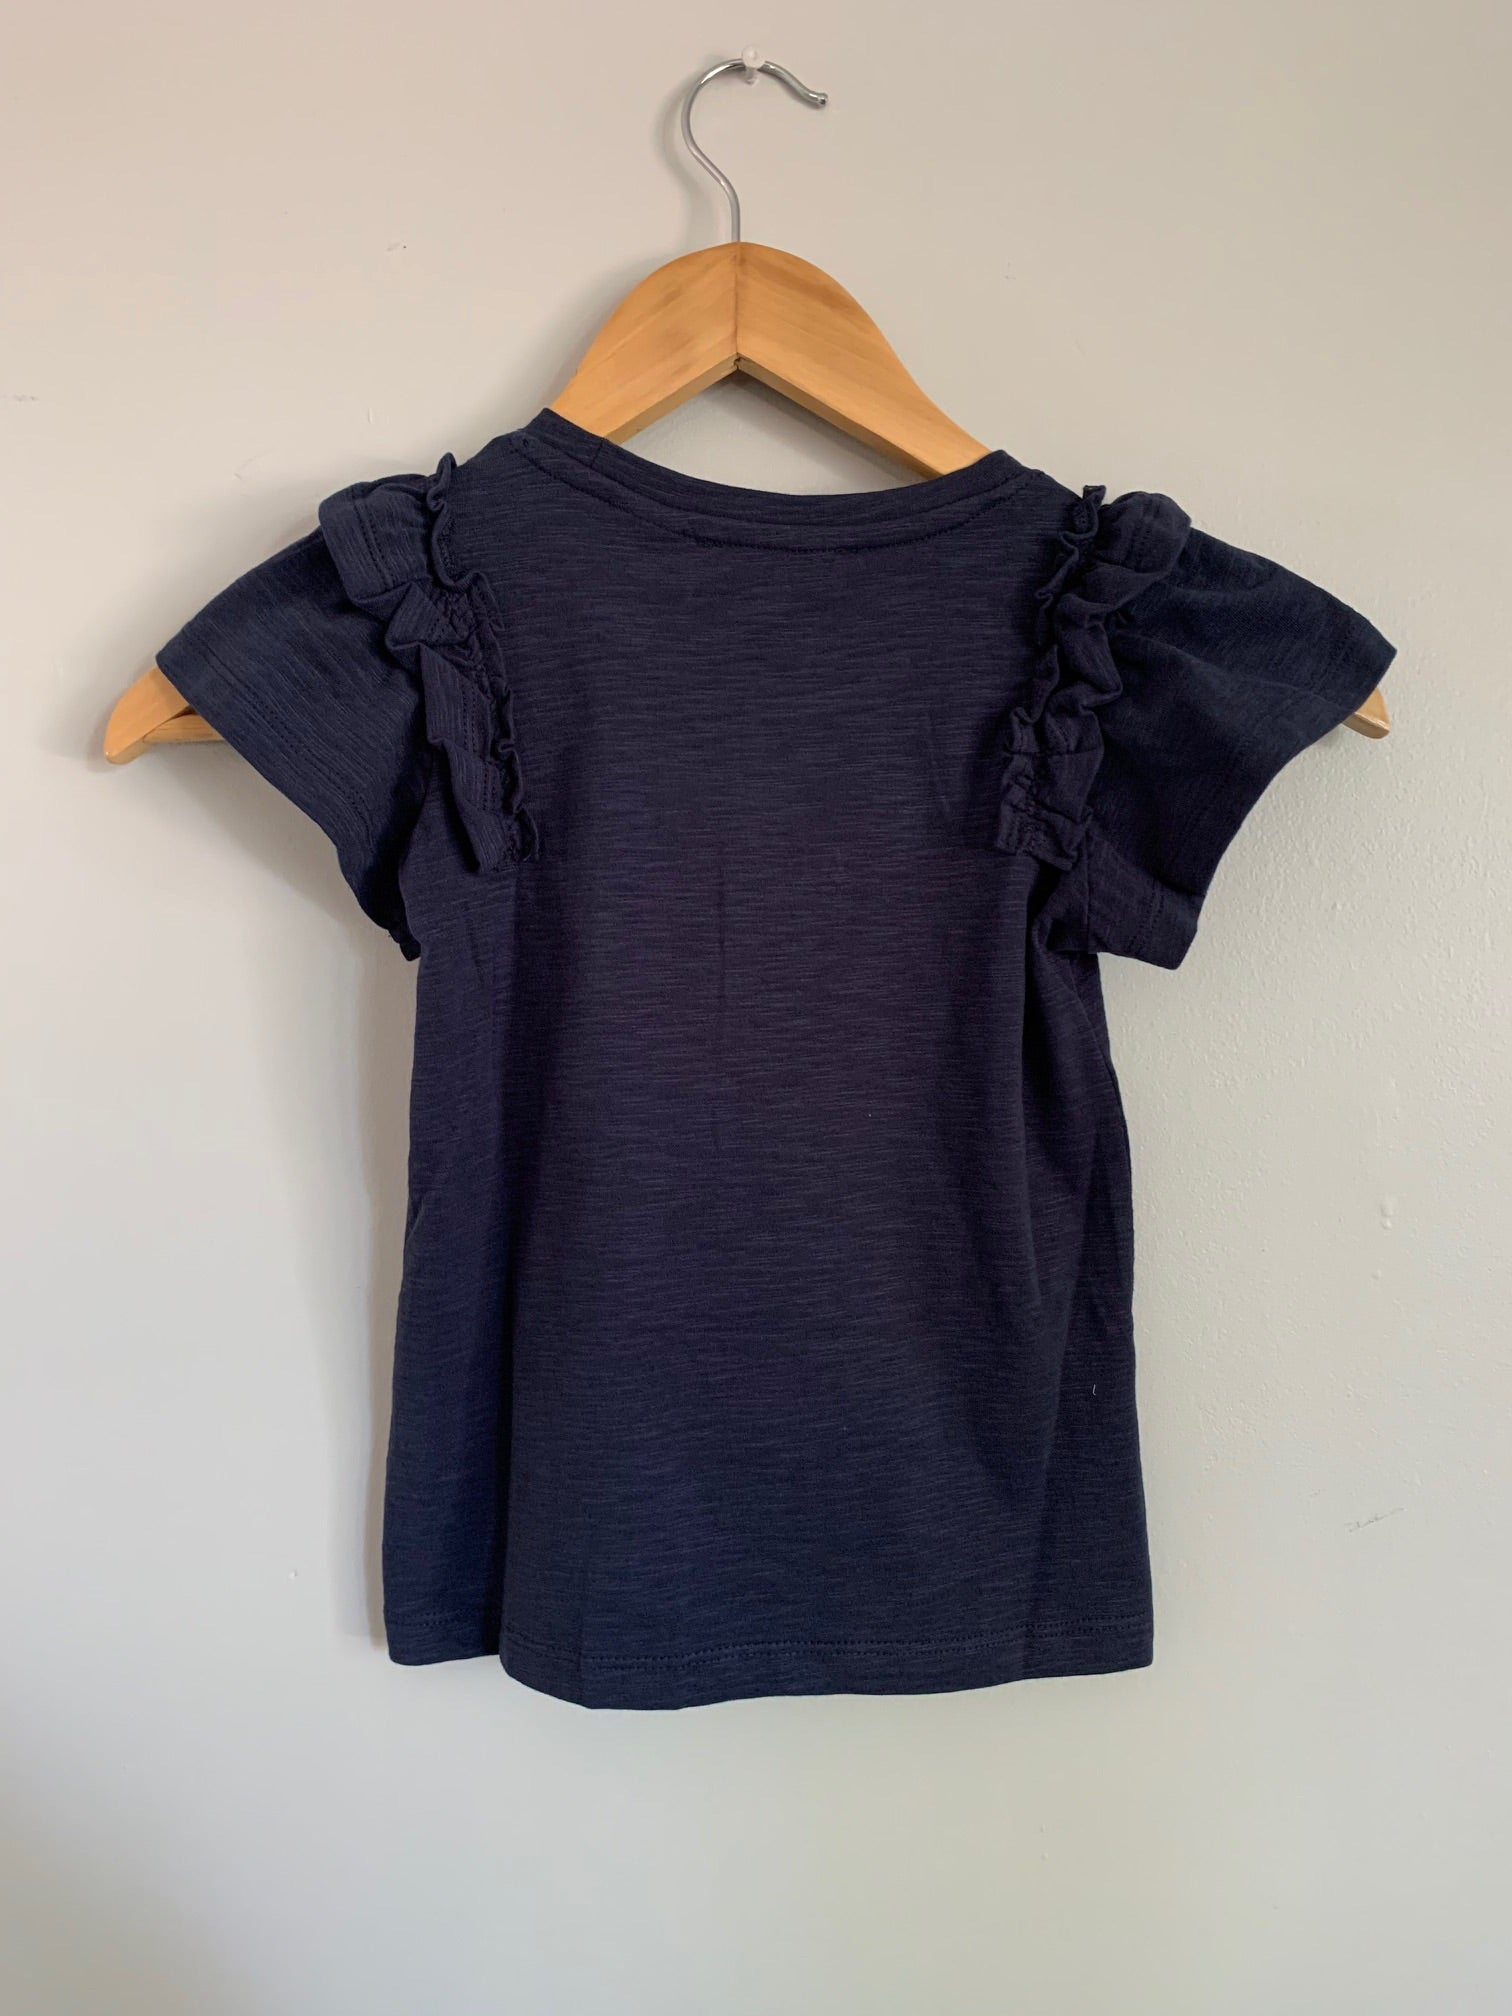 Navy tee with ruffles